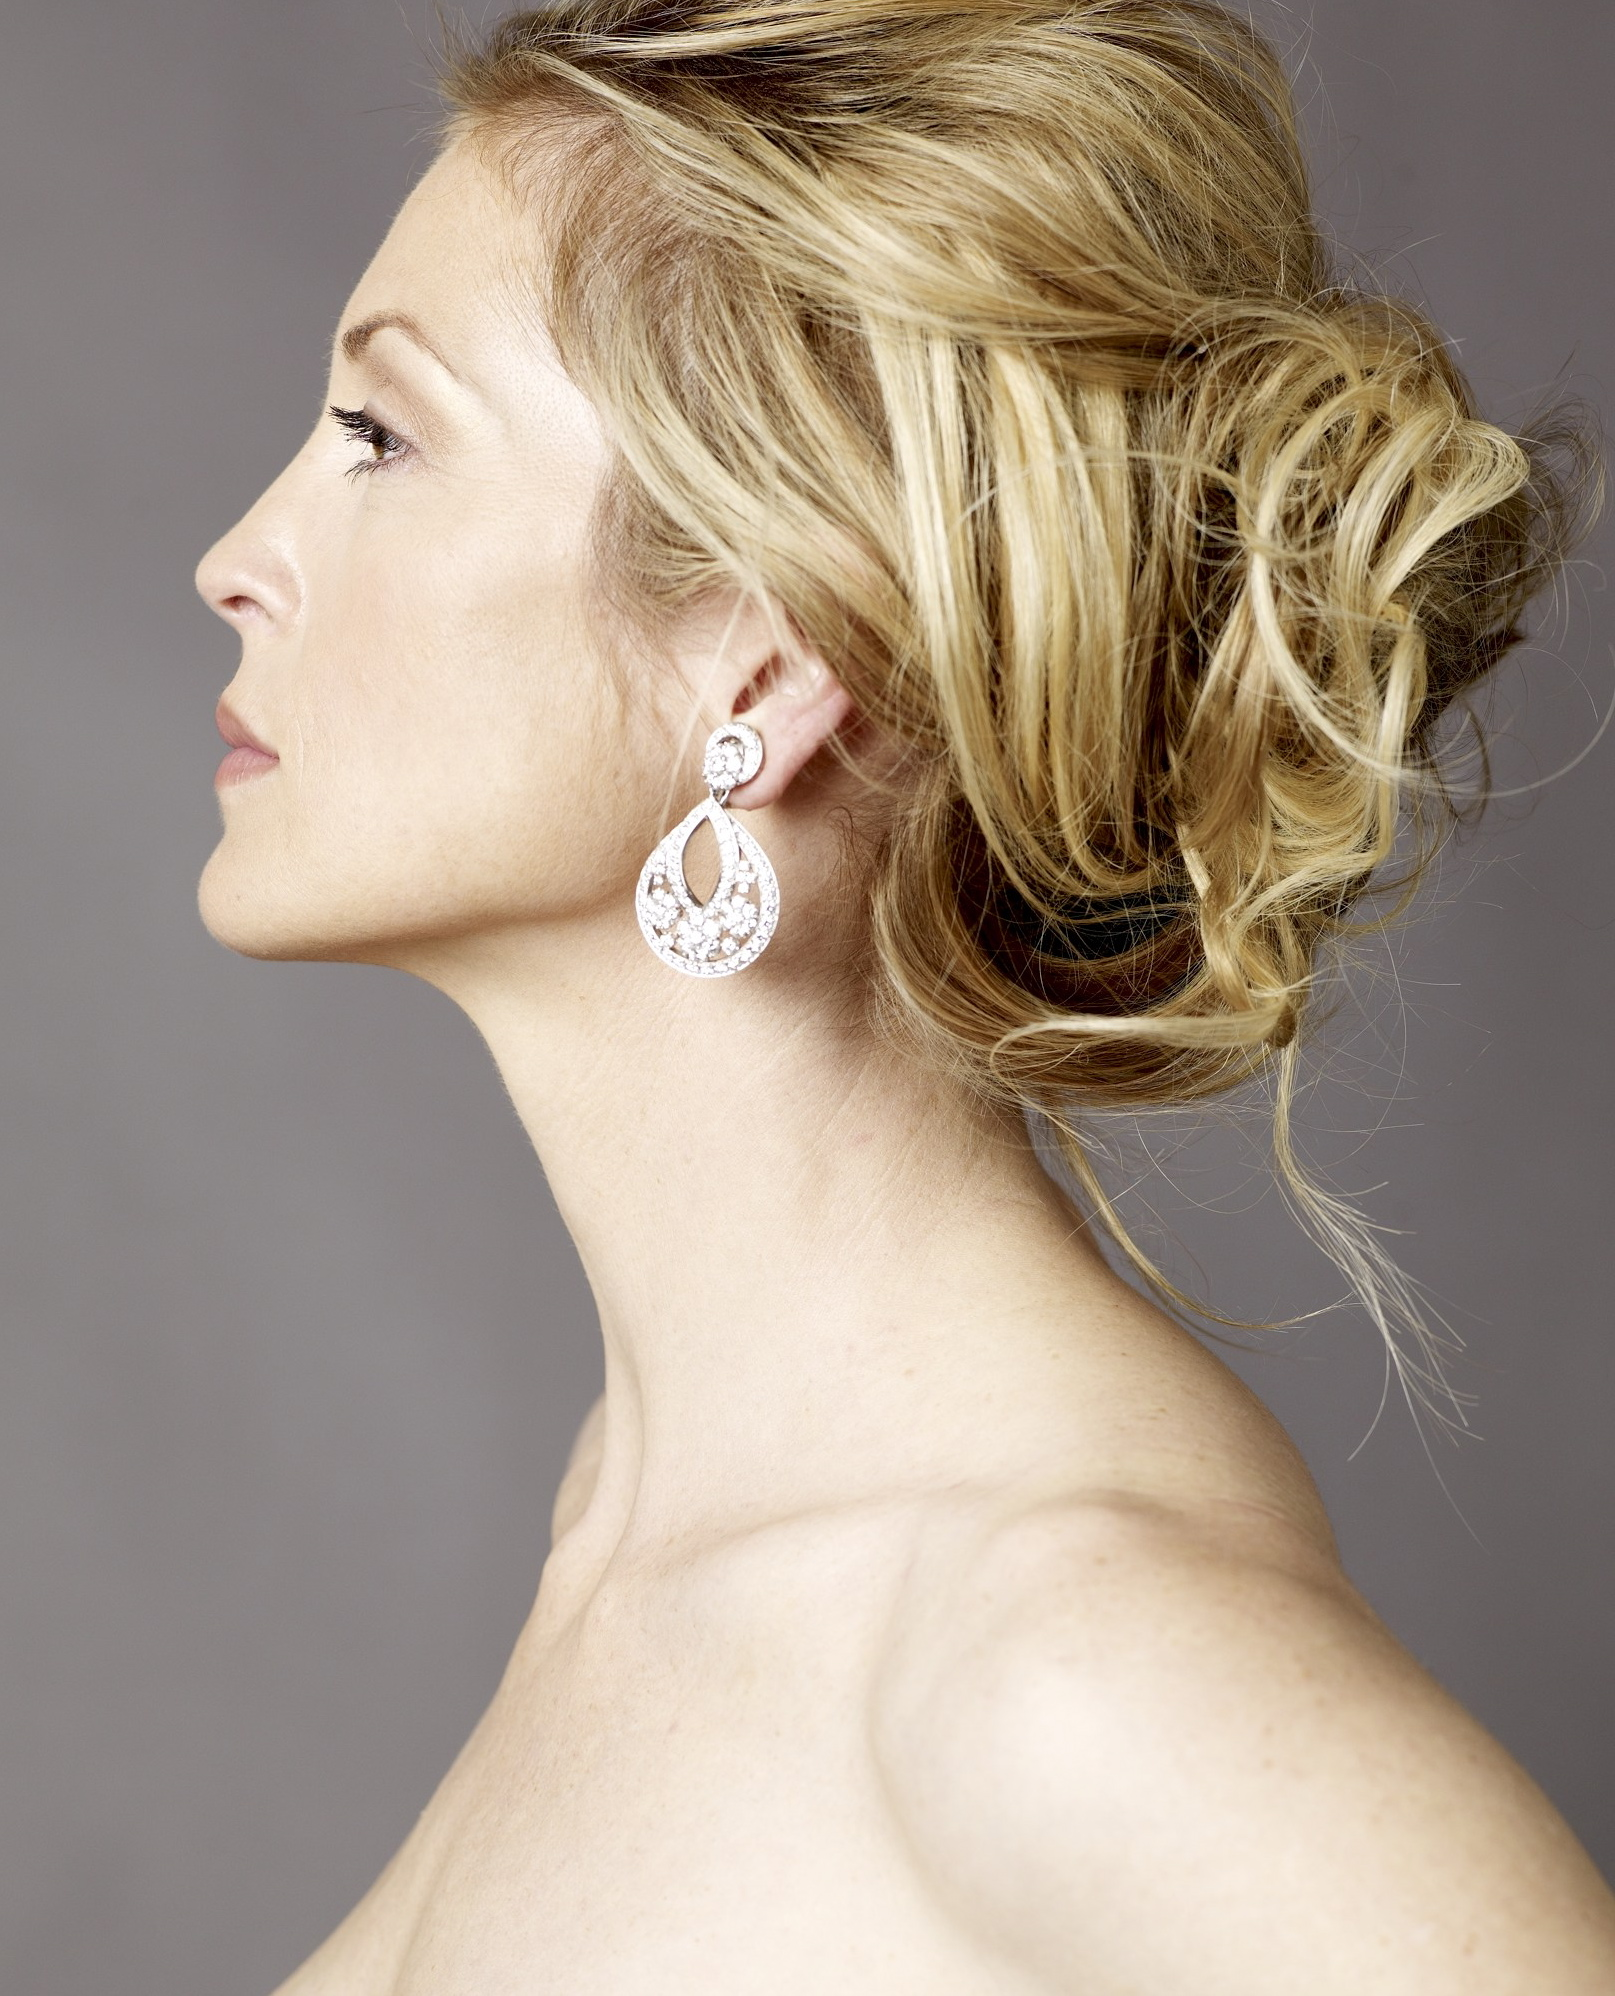 kelly rutherford wiki